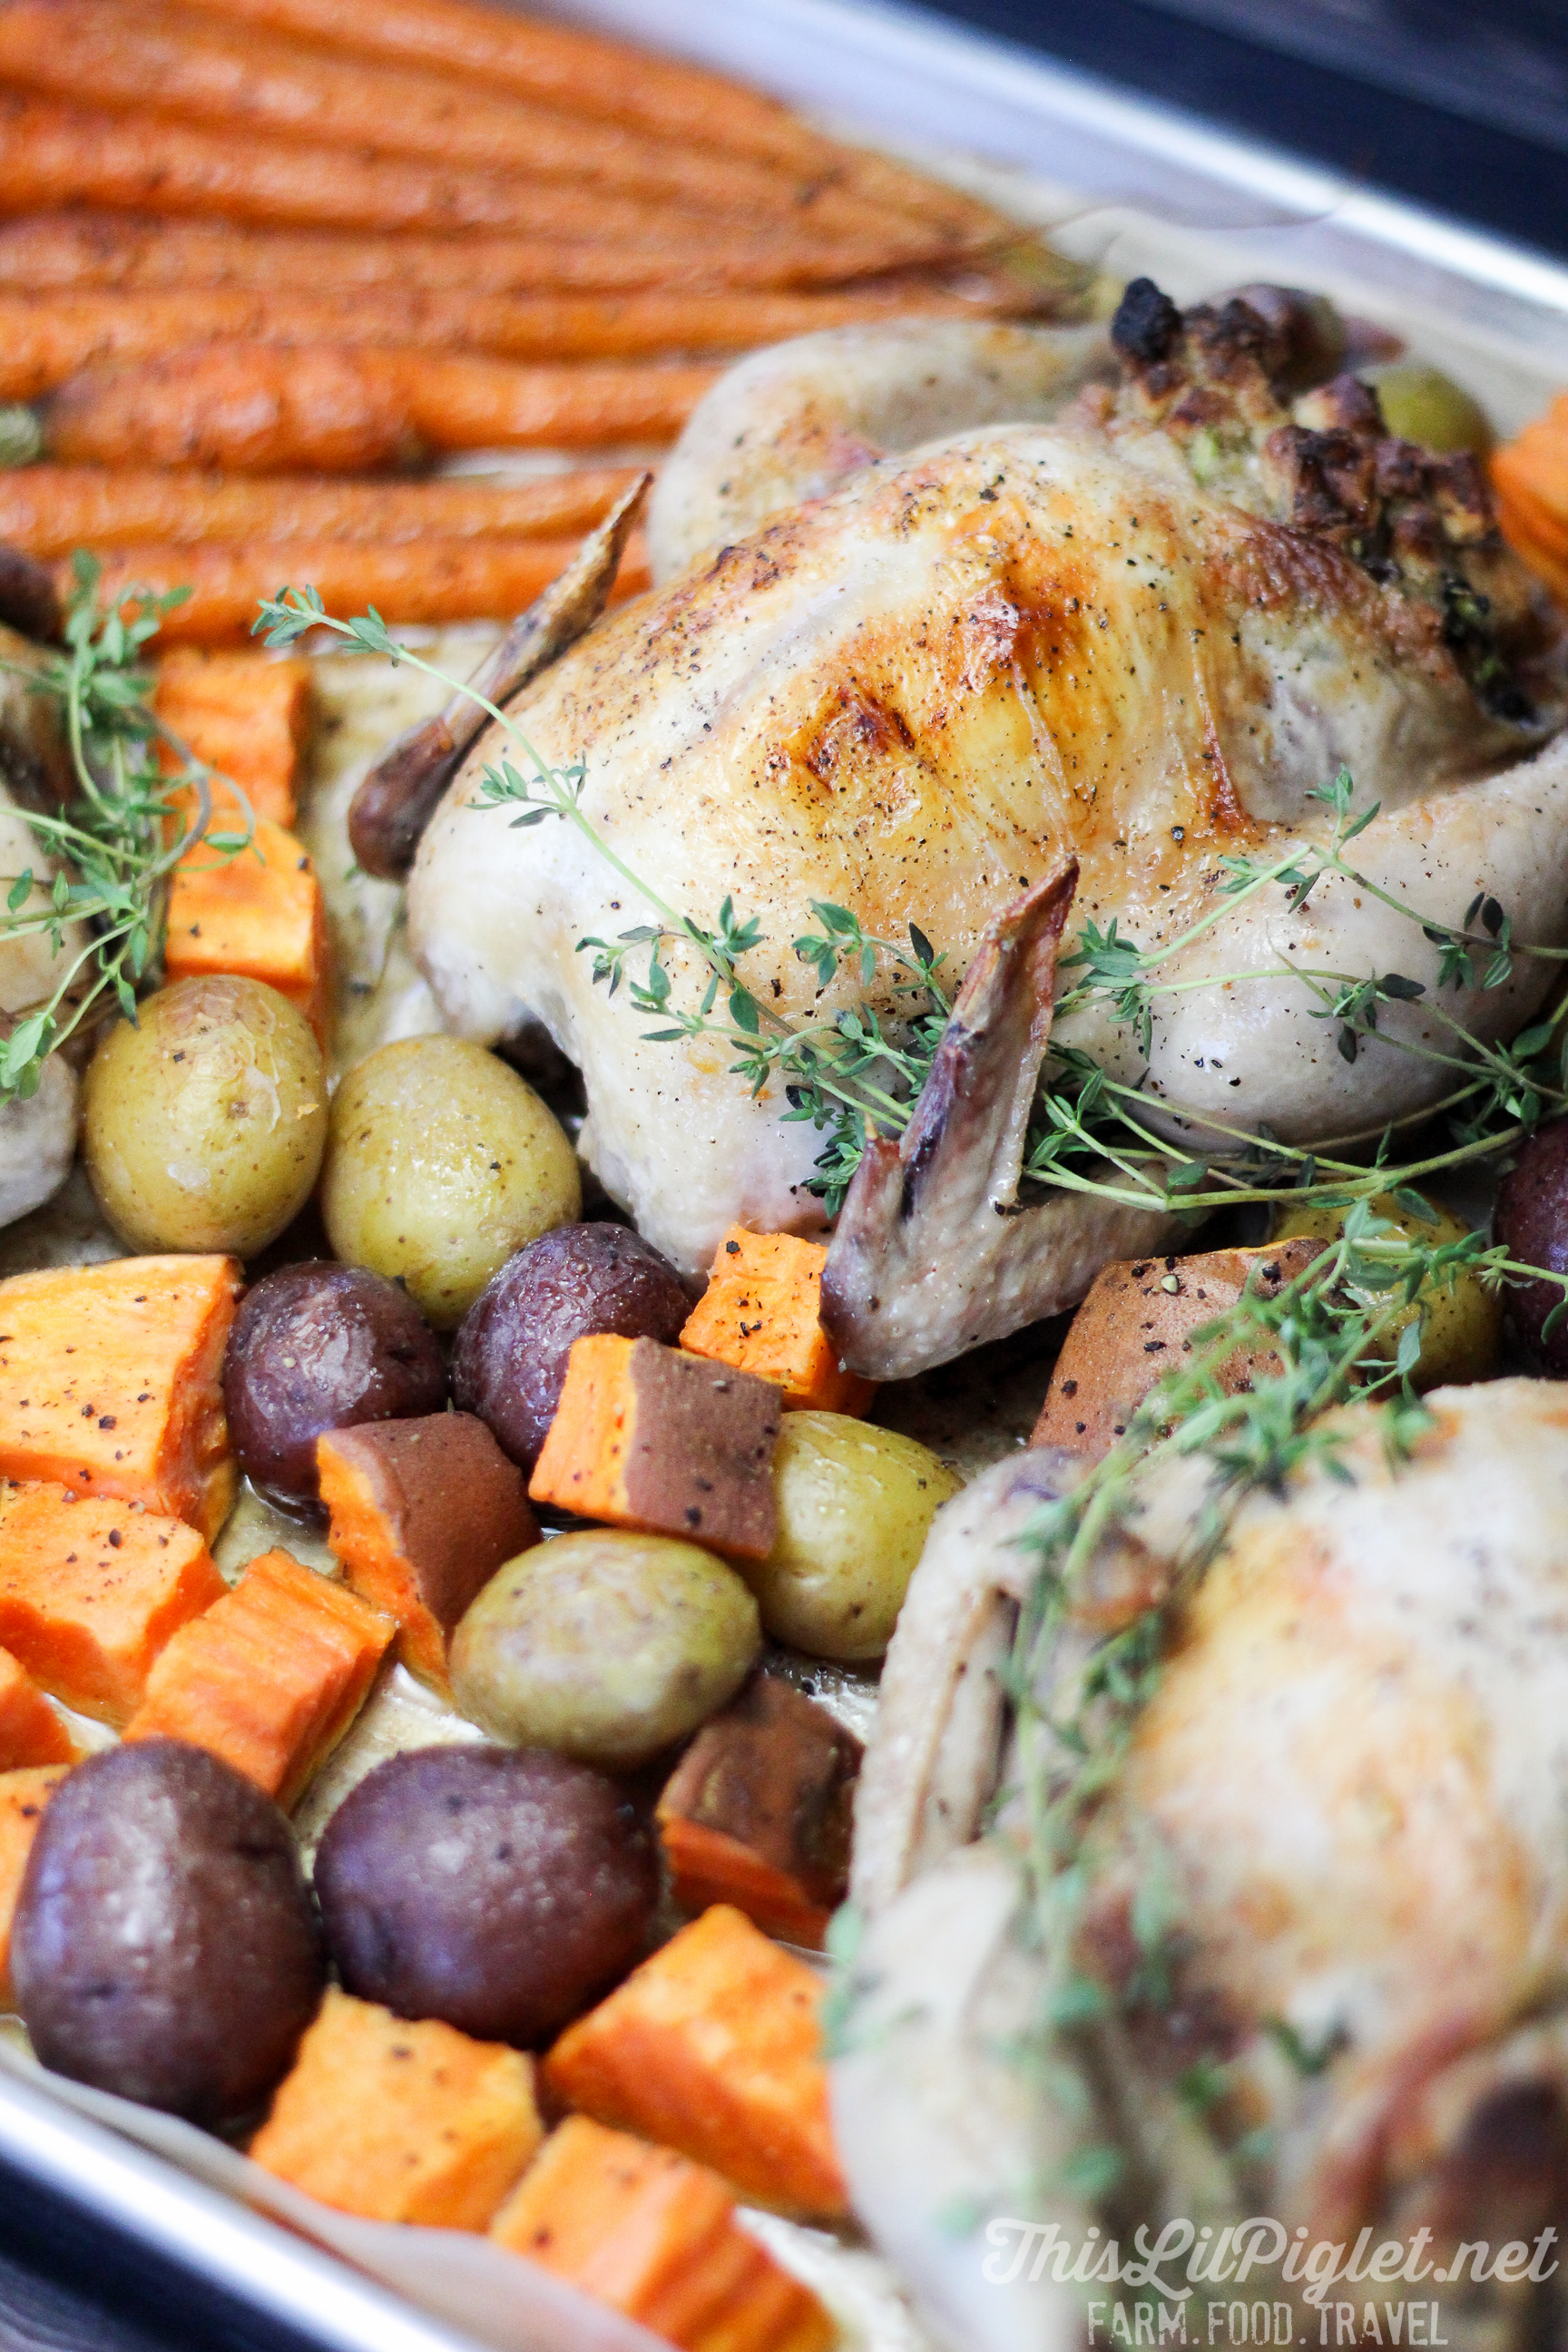 Family Style One Pan Meals: Stuffed Cornish Hens Roasted Vegetables // @thislilpiglet